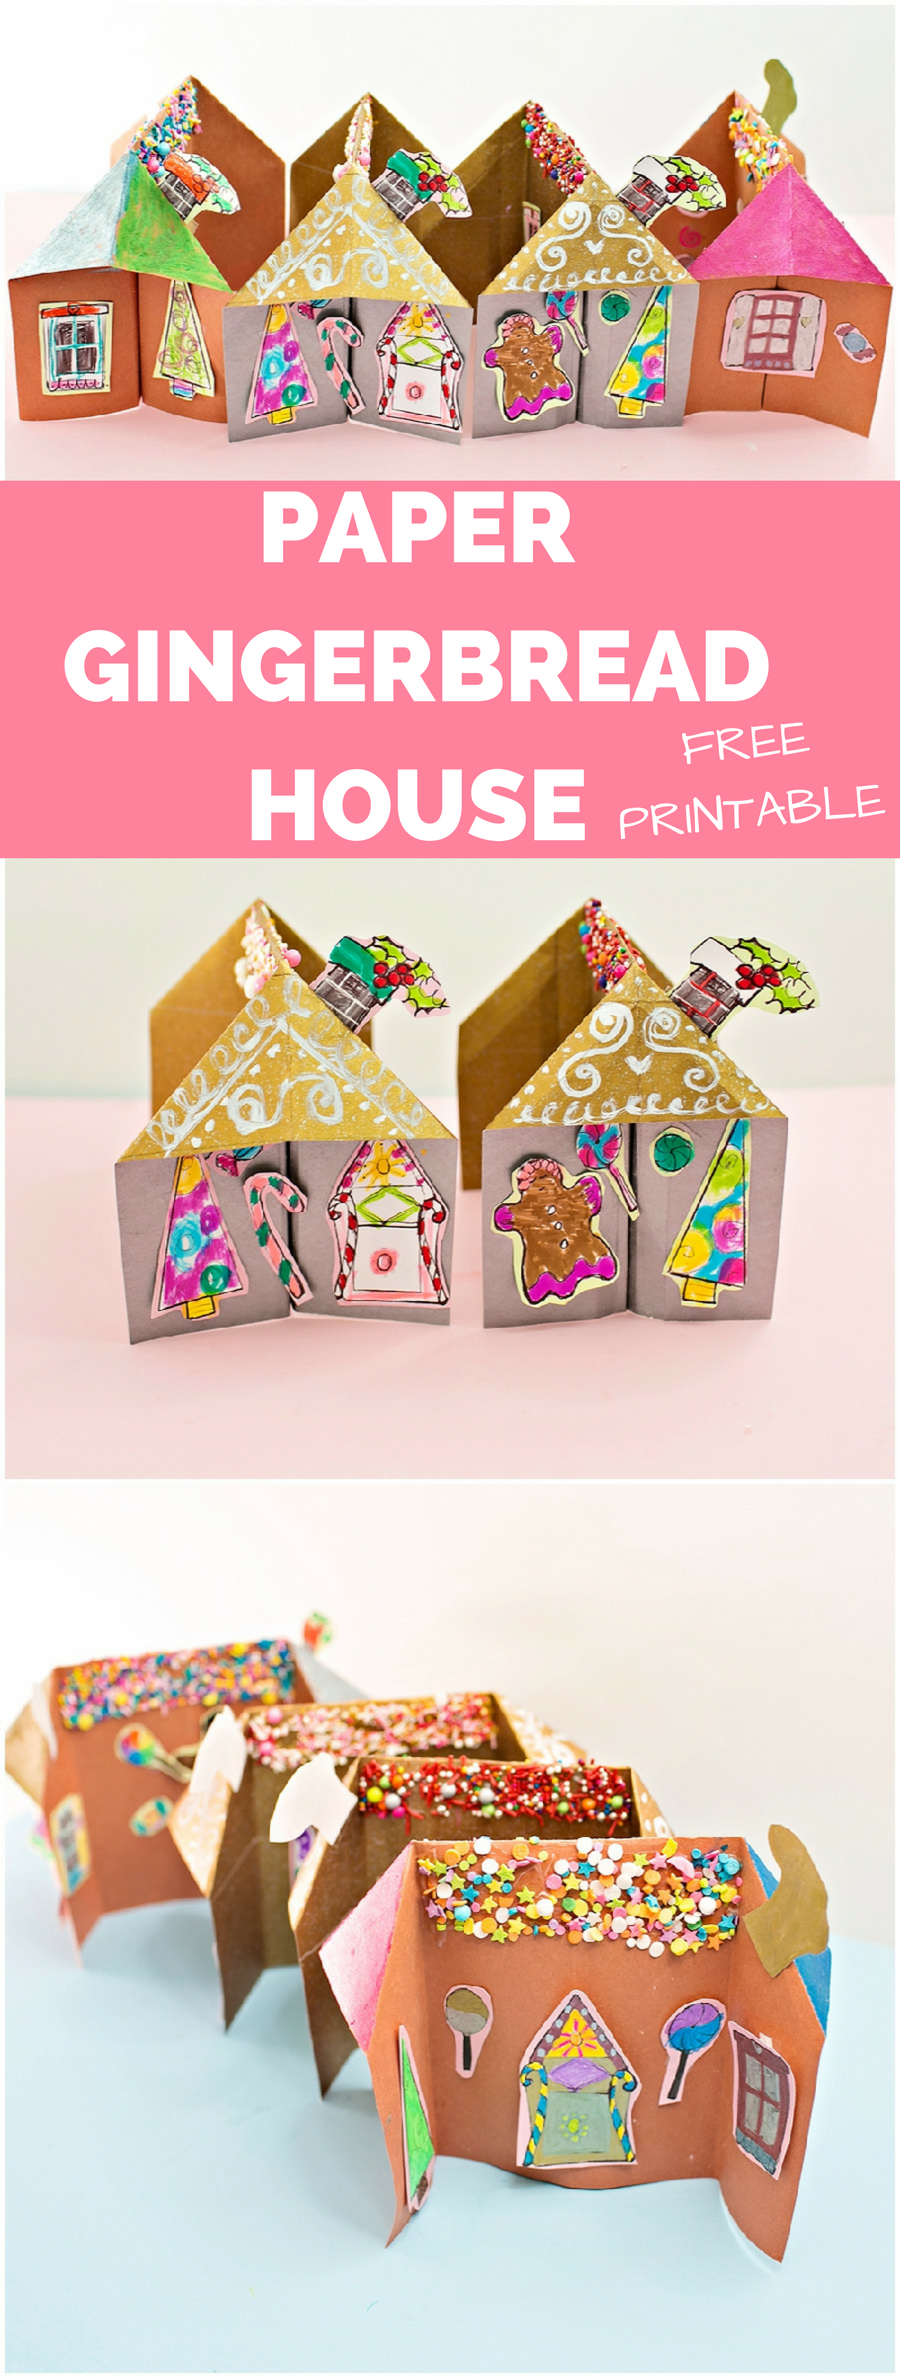 3d paper gingerbread house craft origami type folded house i 3d paper gingerbread house craft origami type folded house i would jeuxipadfo Gallery